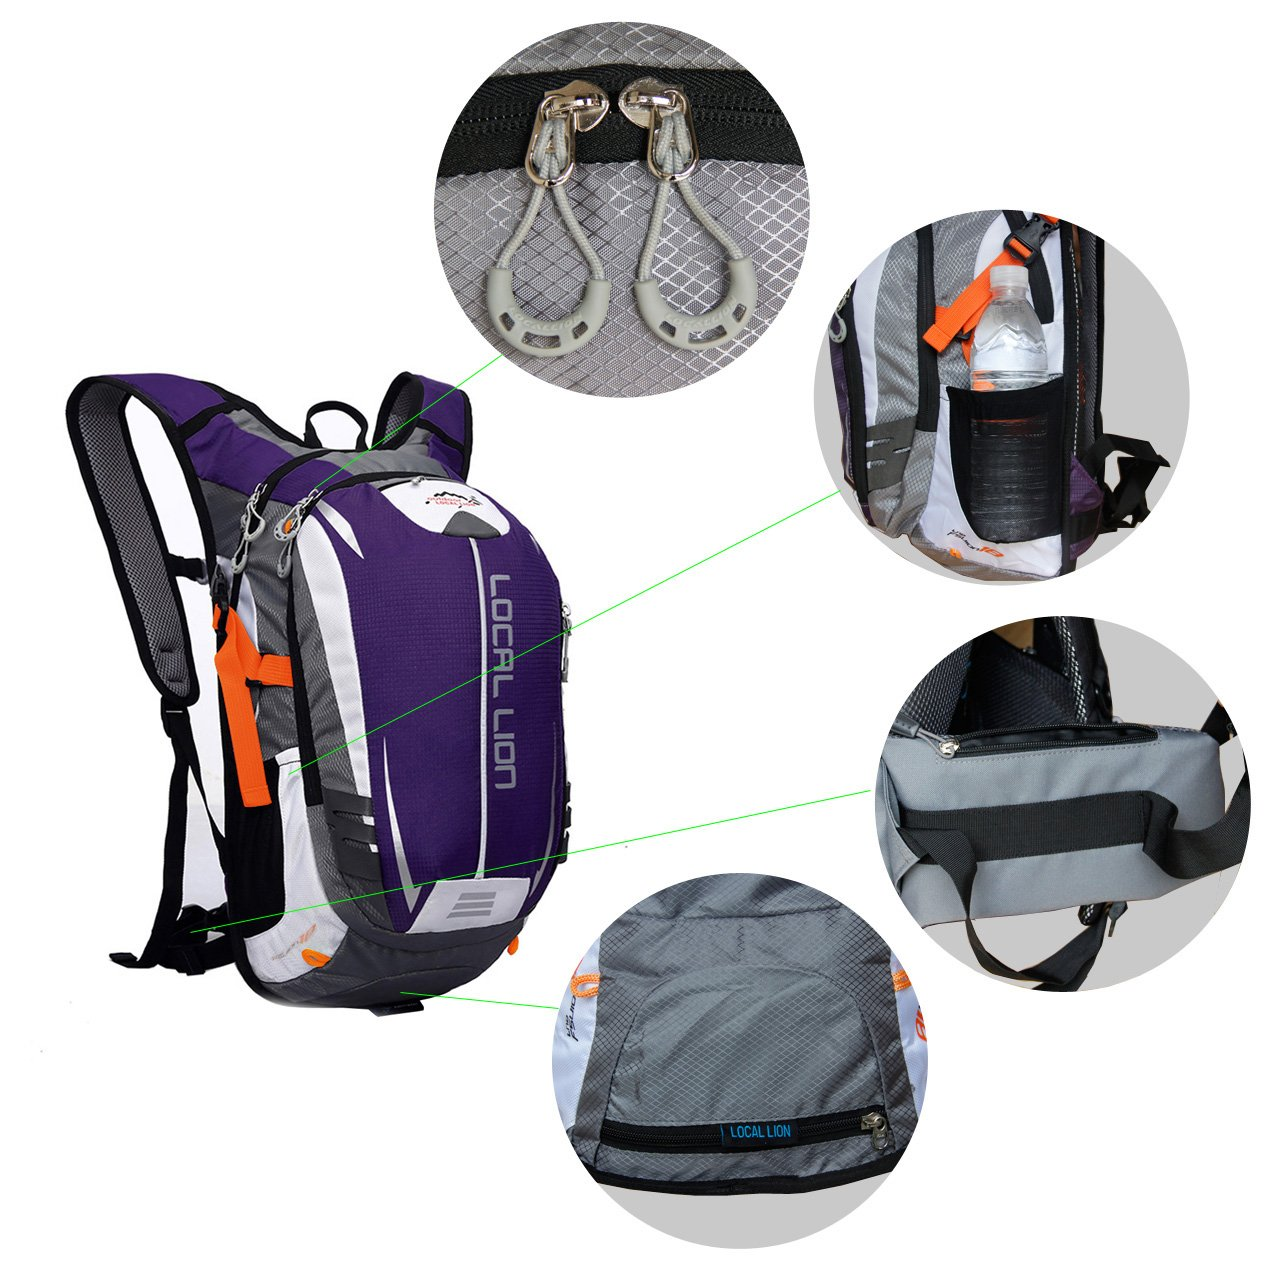 Outdoor Sports Cycling Hiking Camping Travel Daypack, Water resistant, 18L(purple) by YOGOGO (Image #5)